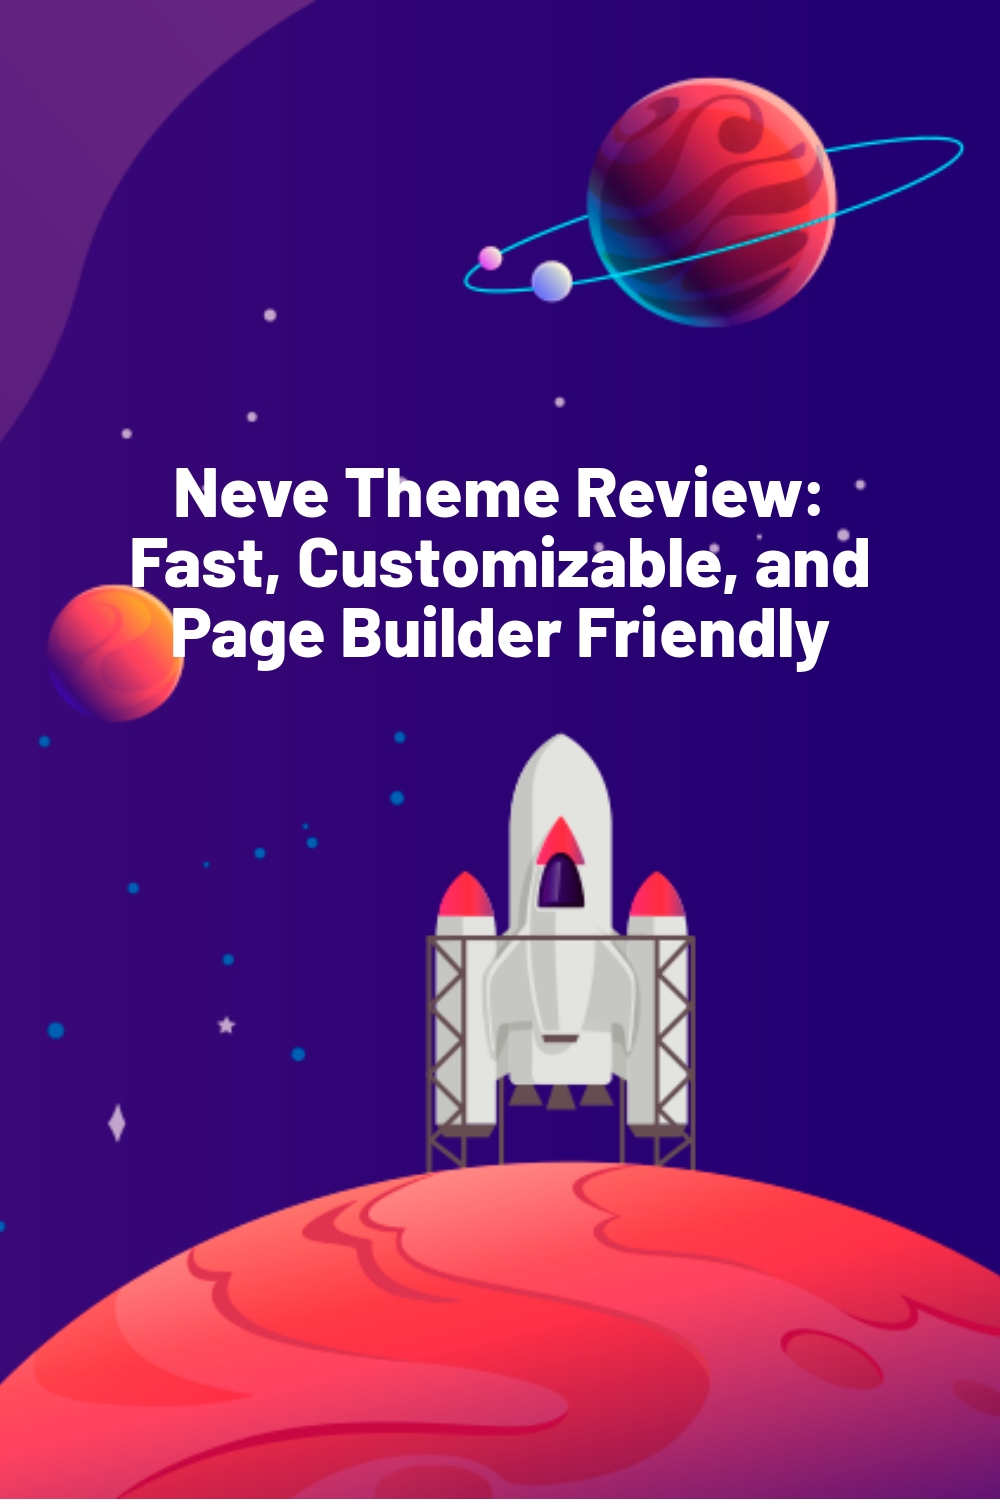 Neve Theme Review: Fast, Customizable, and Page Builder Friendly